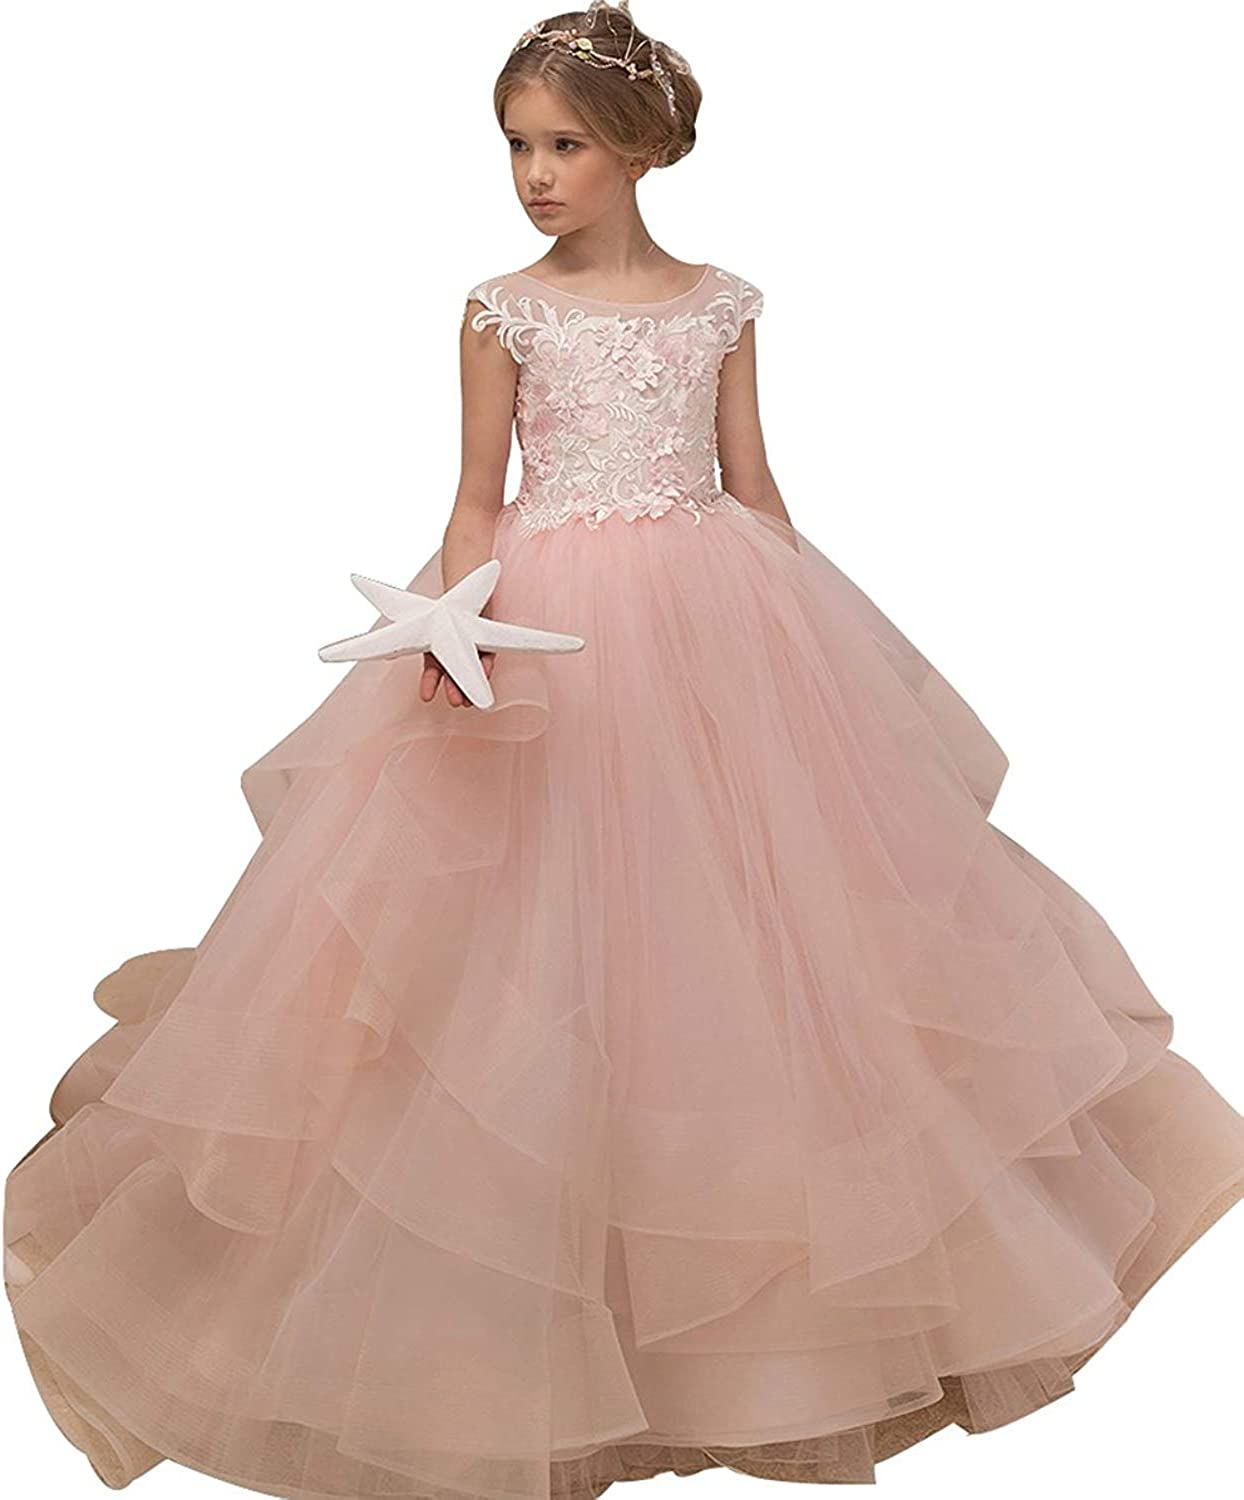 hengyud Pink Toddler Pageant Dresses for Girls Puffy Flower Girls Dress  Ball Gowns